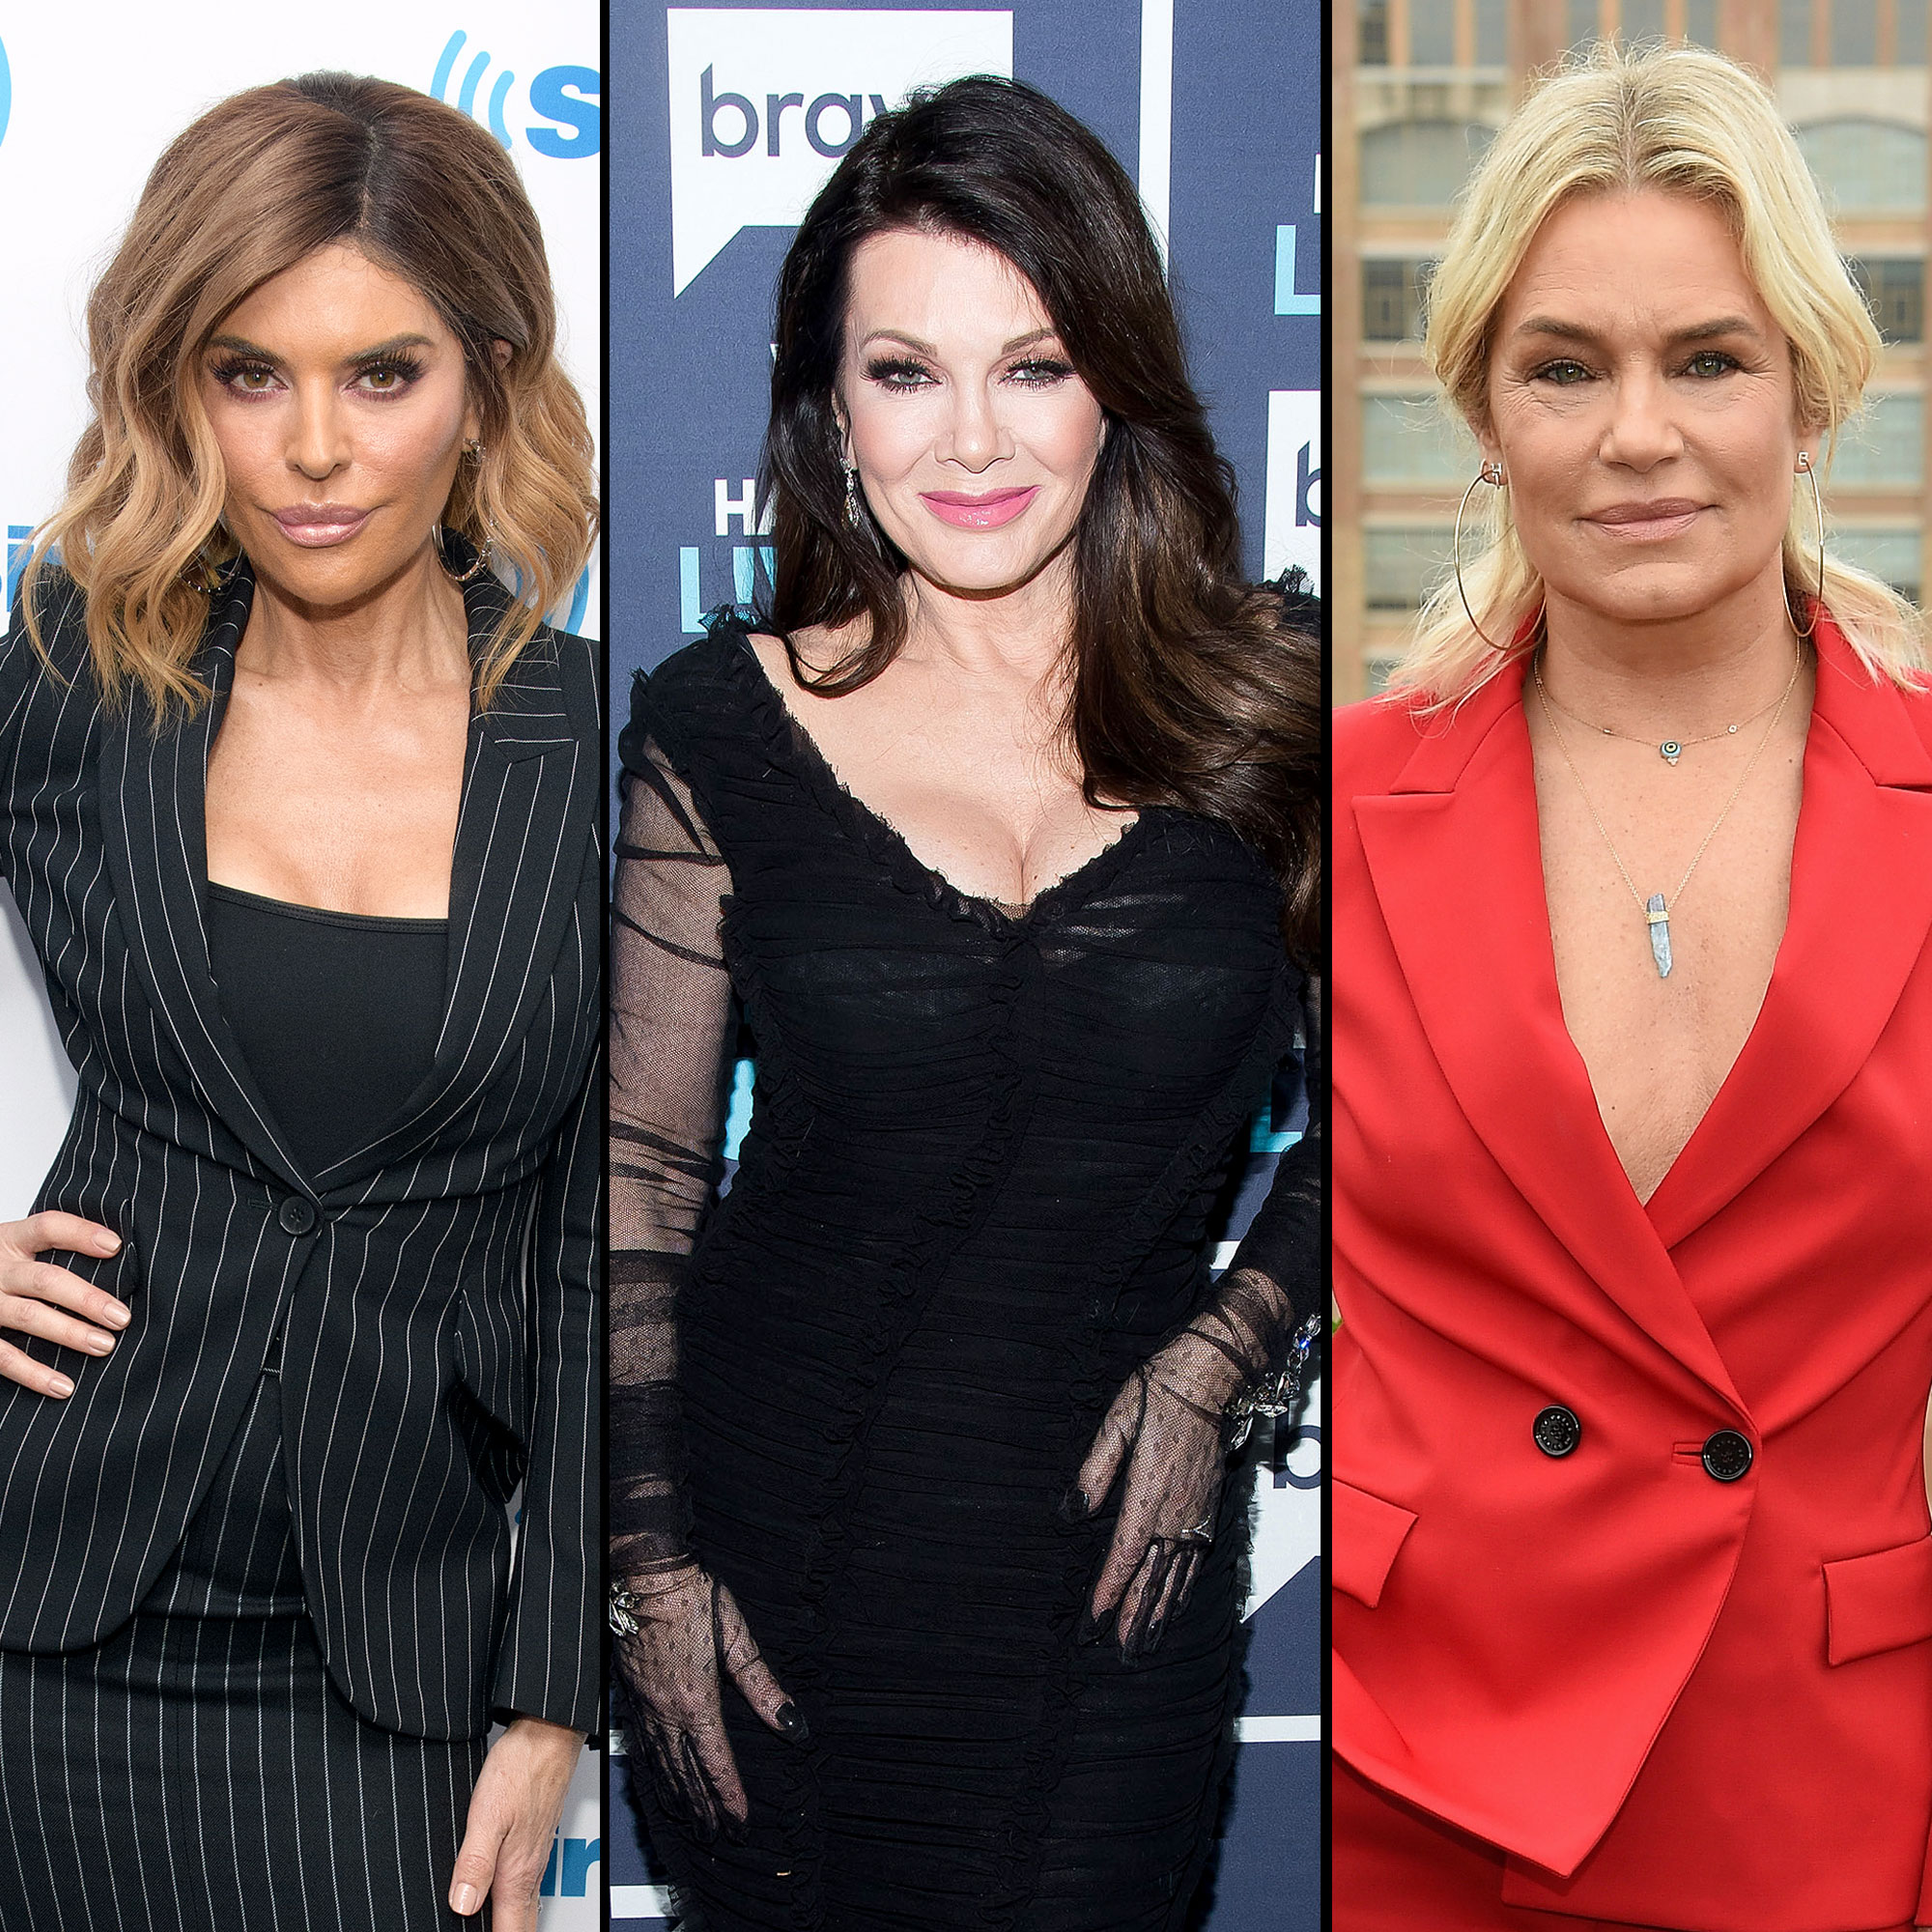 """Lisa Rinna's Most Savage Comebacks - The Dancing With the Stars alum accused Vanderpump of convincing her to orchestrate a storyline in which Rinna suggested that Yolanda suffered from Munchausen syndrome. """"I got a phone call from you, and you encouraged me to say 'Munchausen,'"""" the actress alleged during the season 6 reunion in April 2016."""